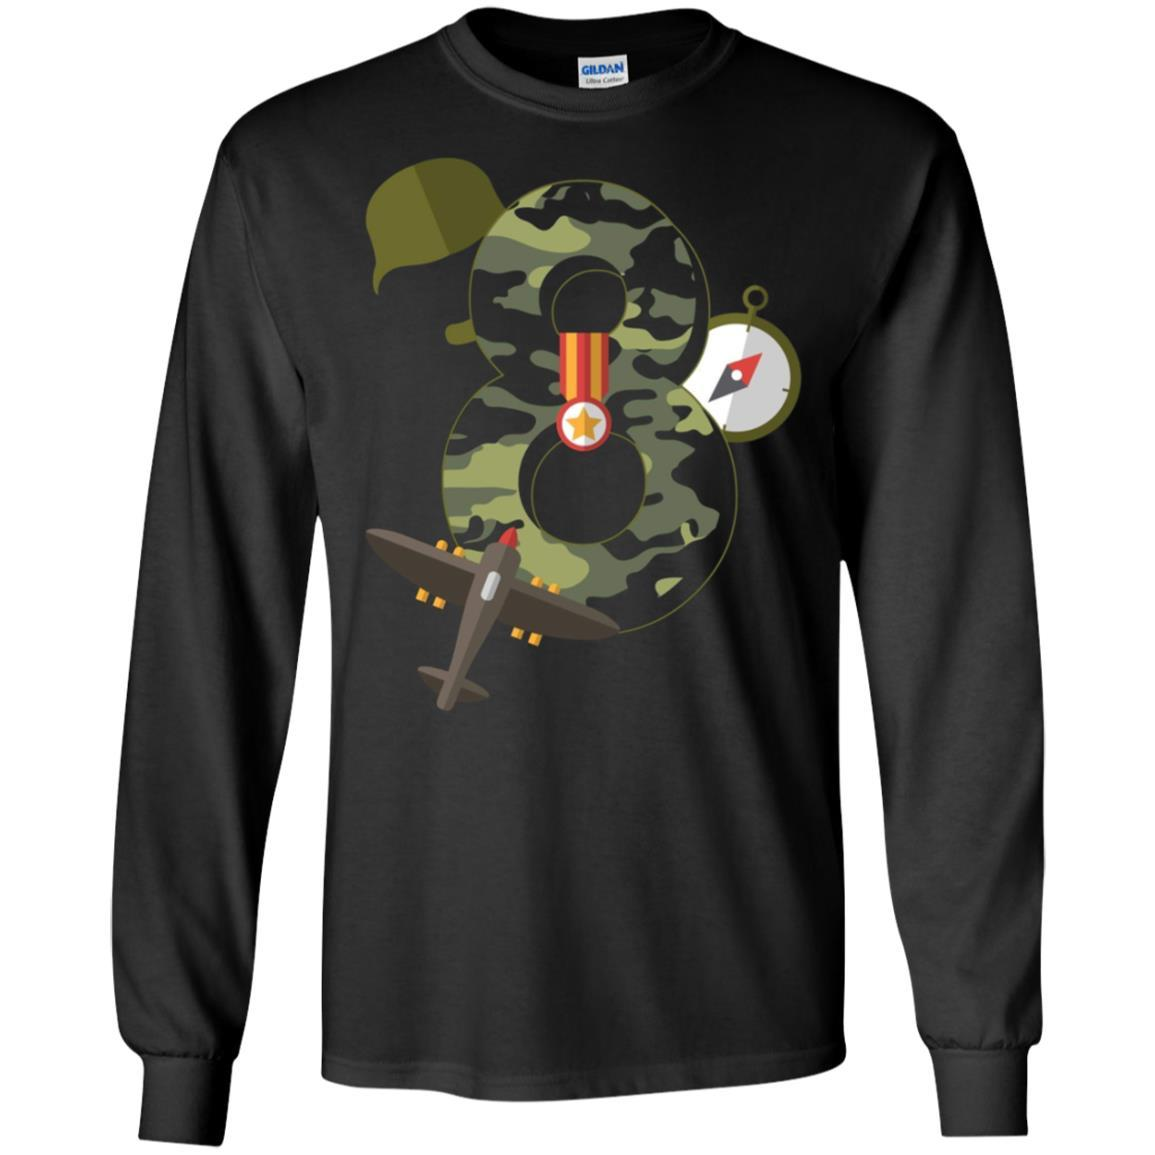 0adea937 ... Load image into Gallery viewer, 8th Birthday Camouflage Hero Army  Soldier T-shirt ...